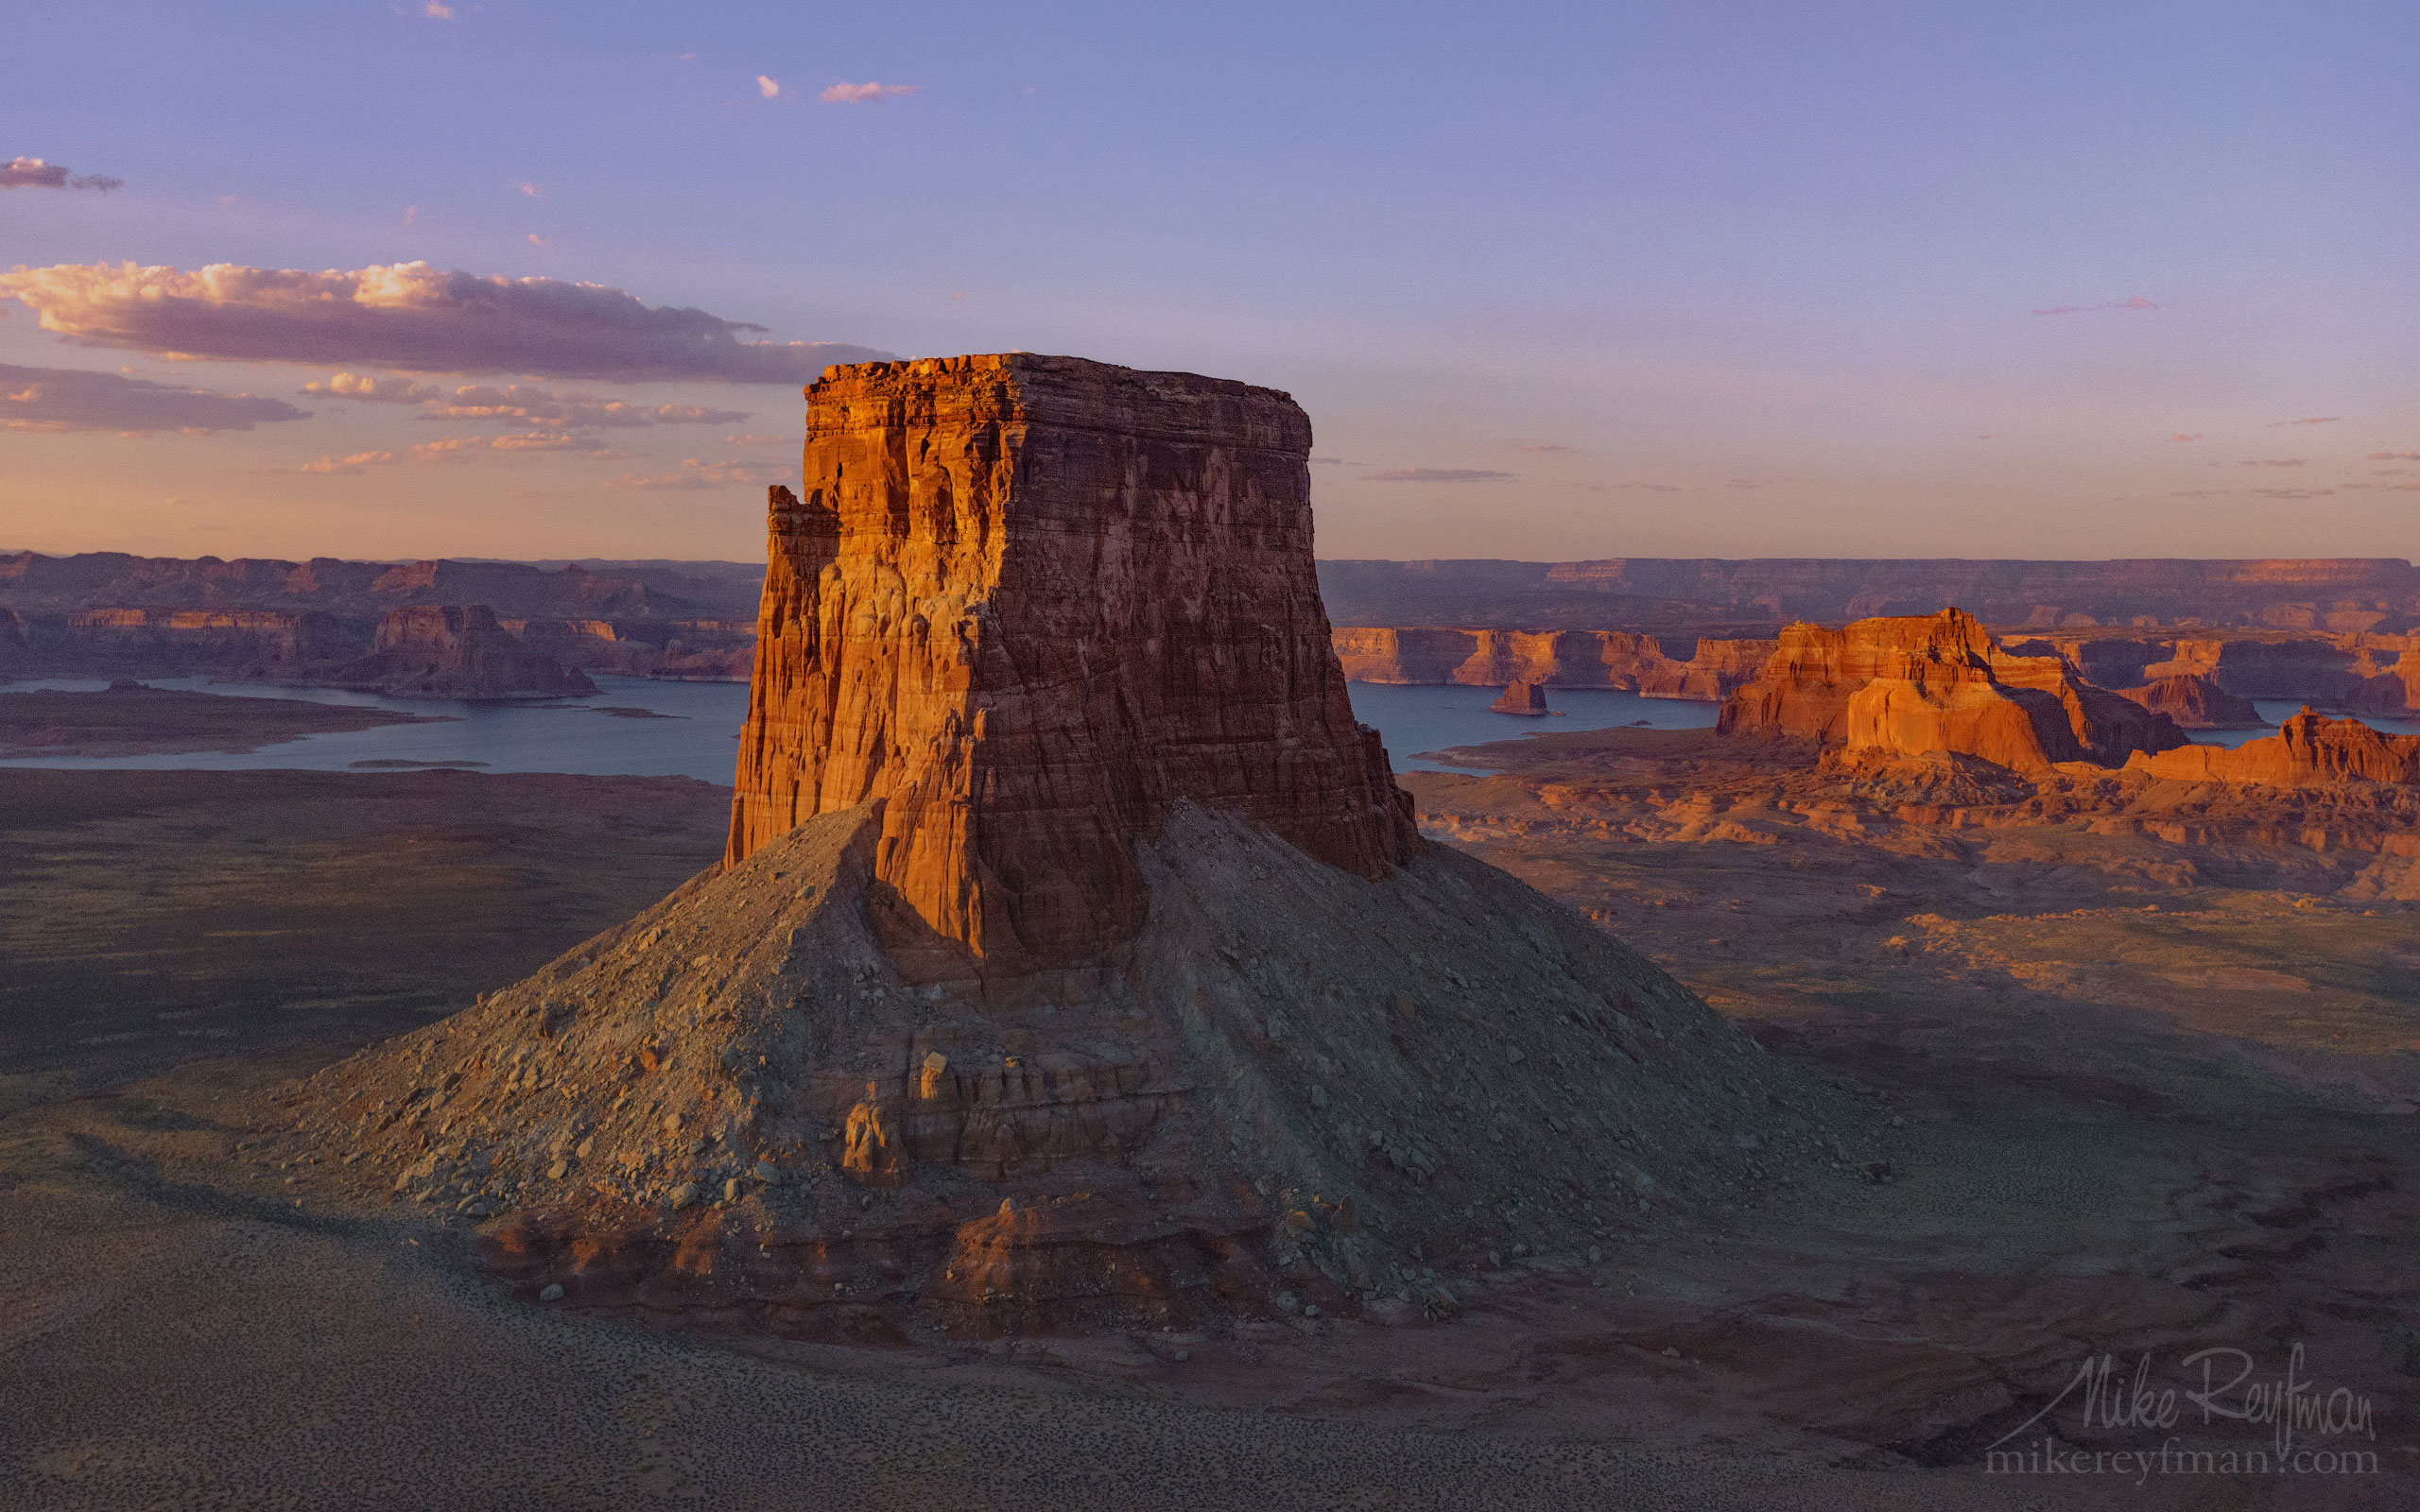 Tower Butte and Lake Powell. Glen Canyon NRA. Uta/Arizona, USA. 055-LP3_O3X5115.jpg - Lake Powell, Glen Canyon NAR. Colorado and Sun Juan Rivers. Utah/Arizona, USA  - Mike Reyfman Photography